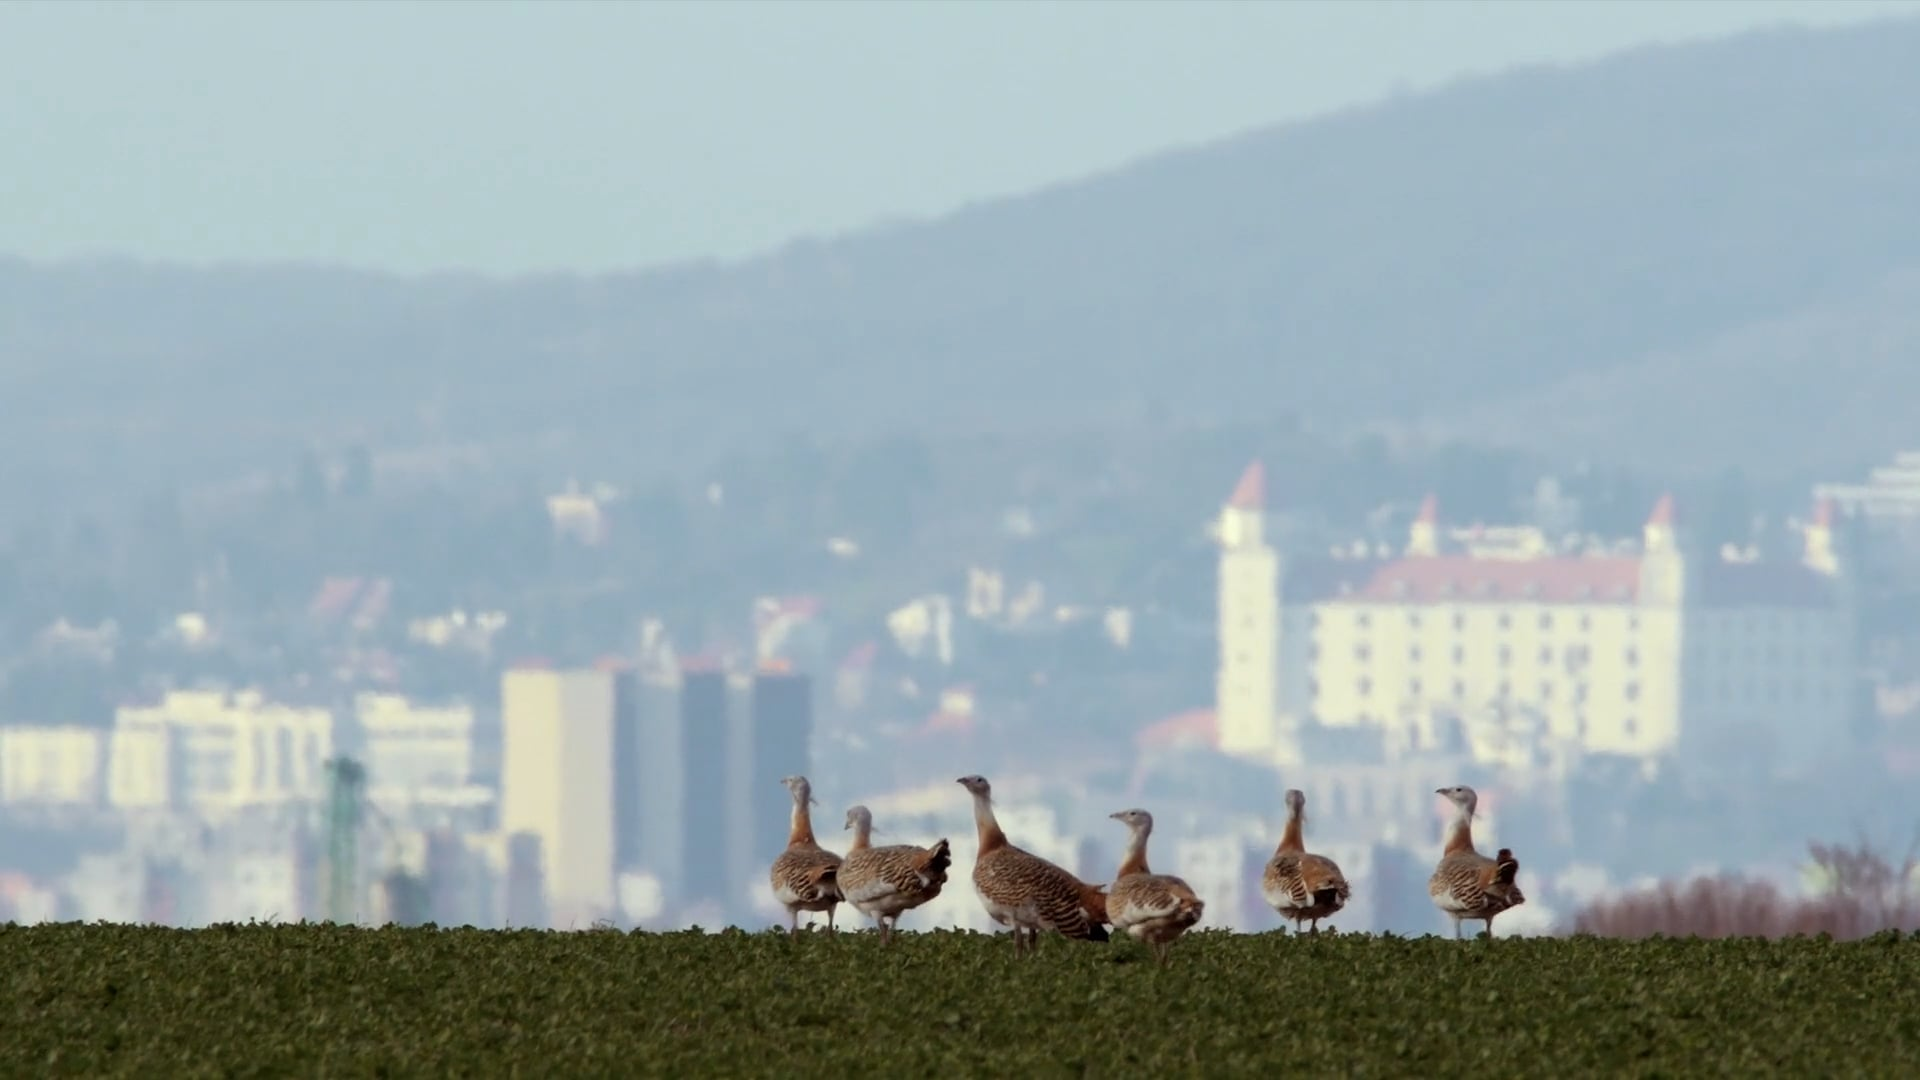 Bratislava - A City Surrounded by Nature